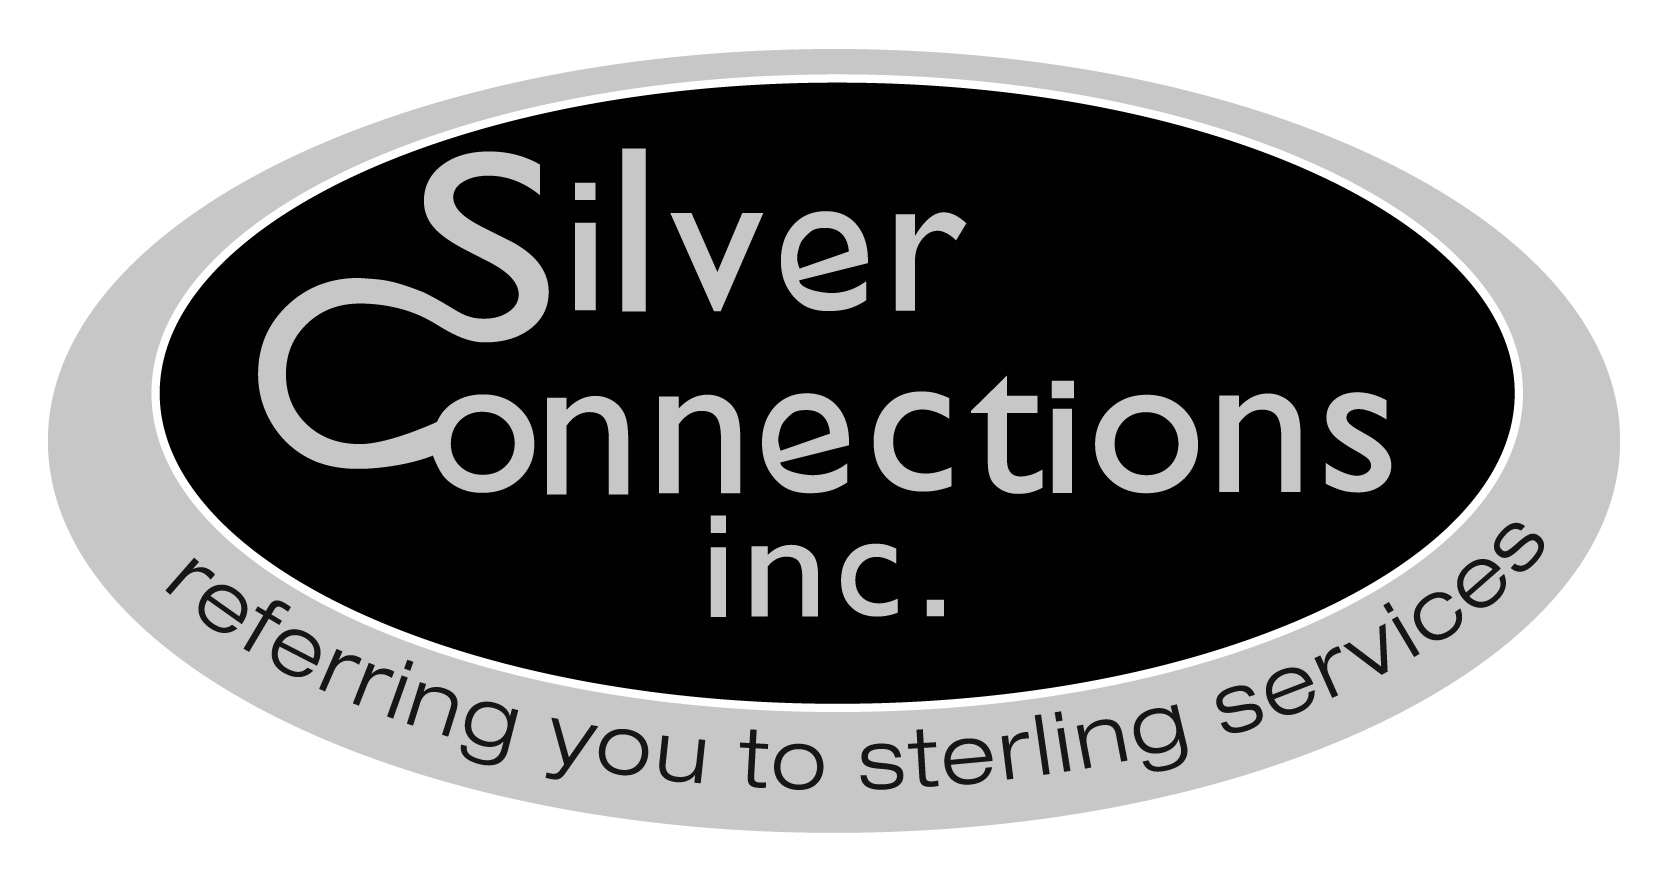 Silver Connections Inc.